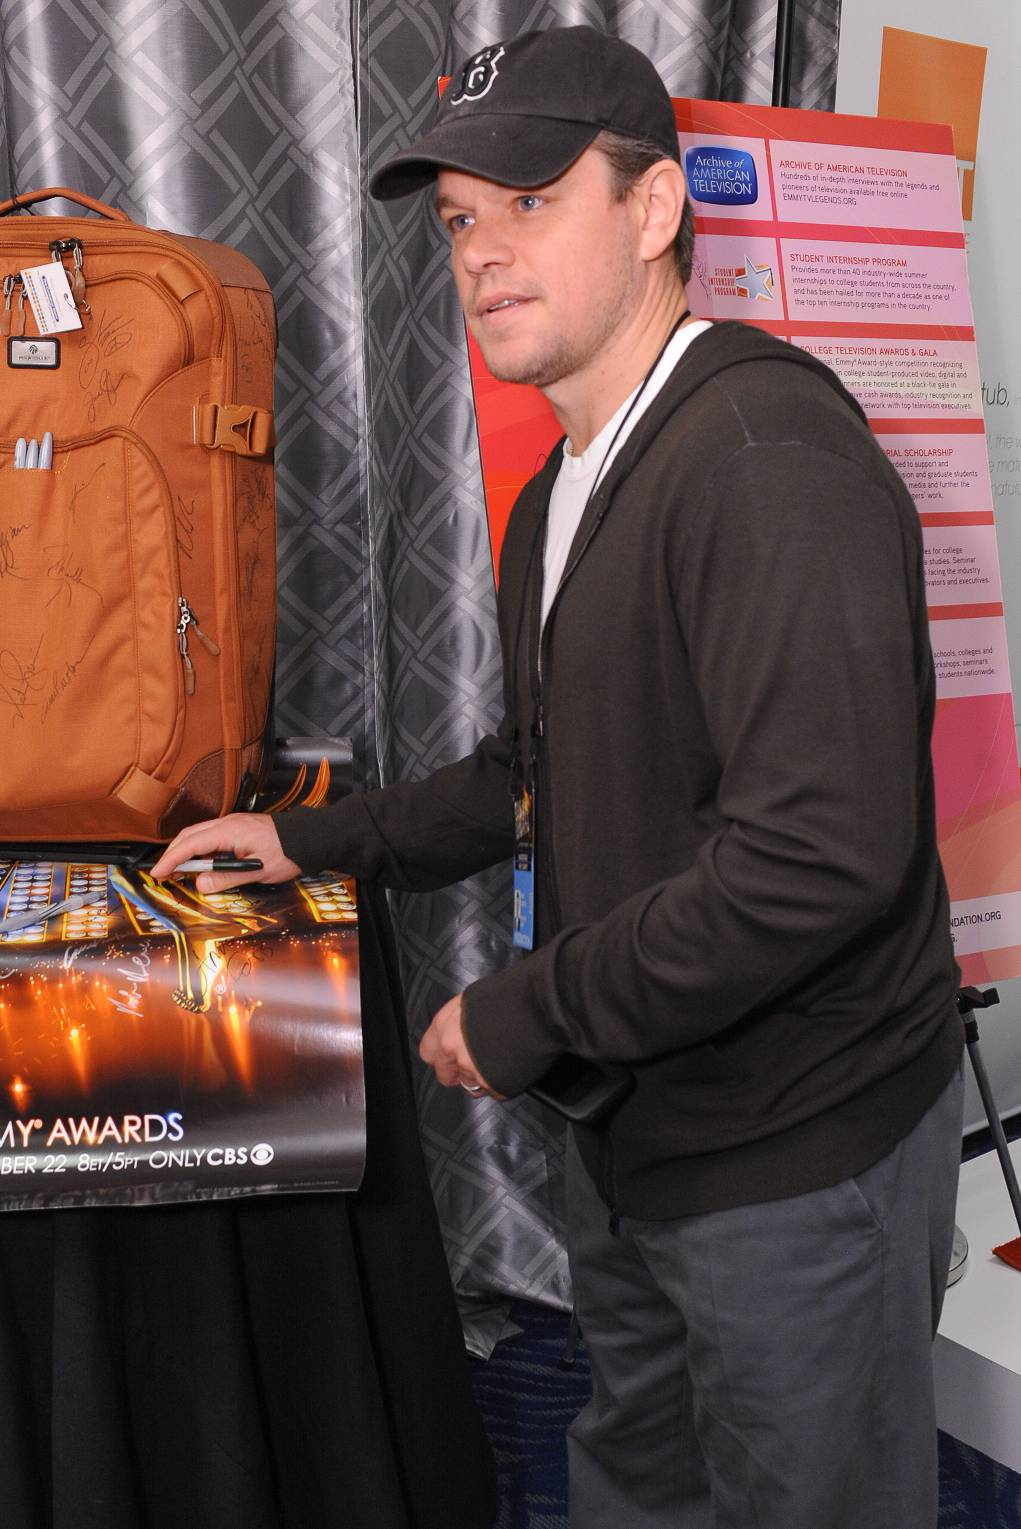 Matt Damon at the 65th Emmy Awards Giving Suite by Backstage Creations Sept. 21 in L.A. (Adrian Sidney/Invision)